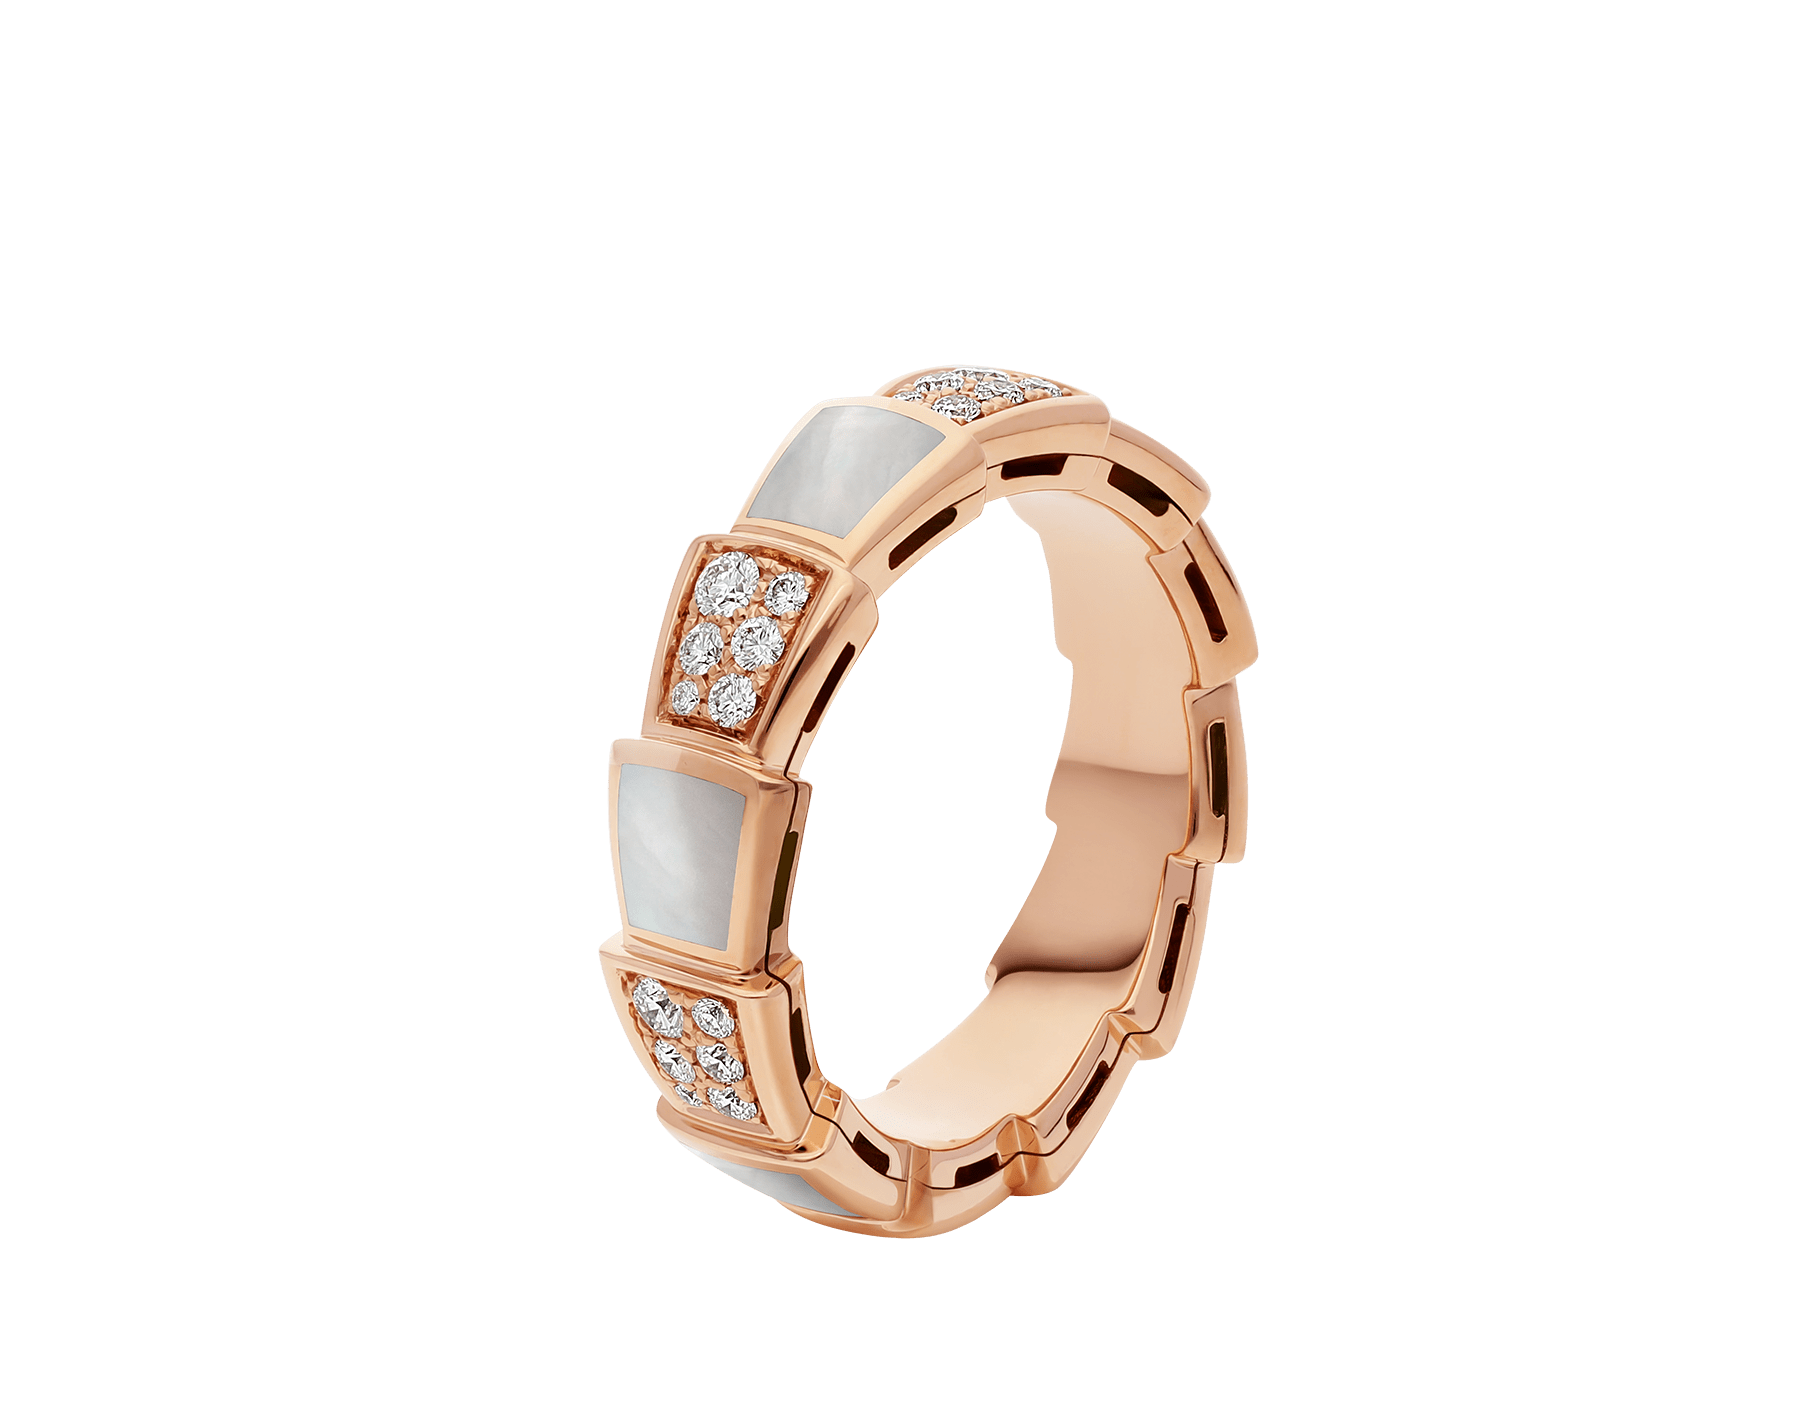 Serpenti Viper band ring in 18 kt rose gold set with mother-of-pearl elements and pavé diamonds . AN858043 image 1